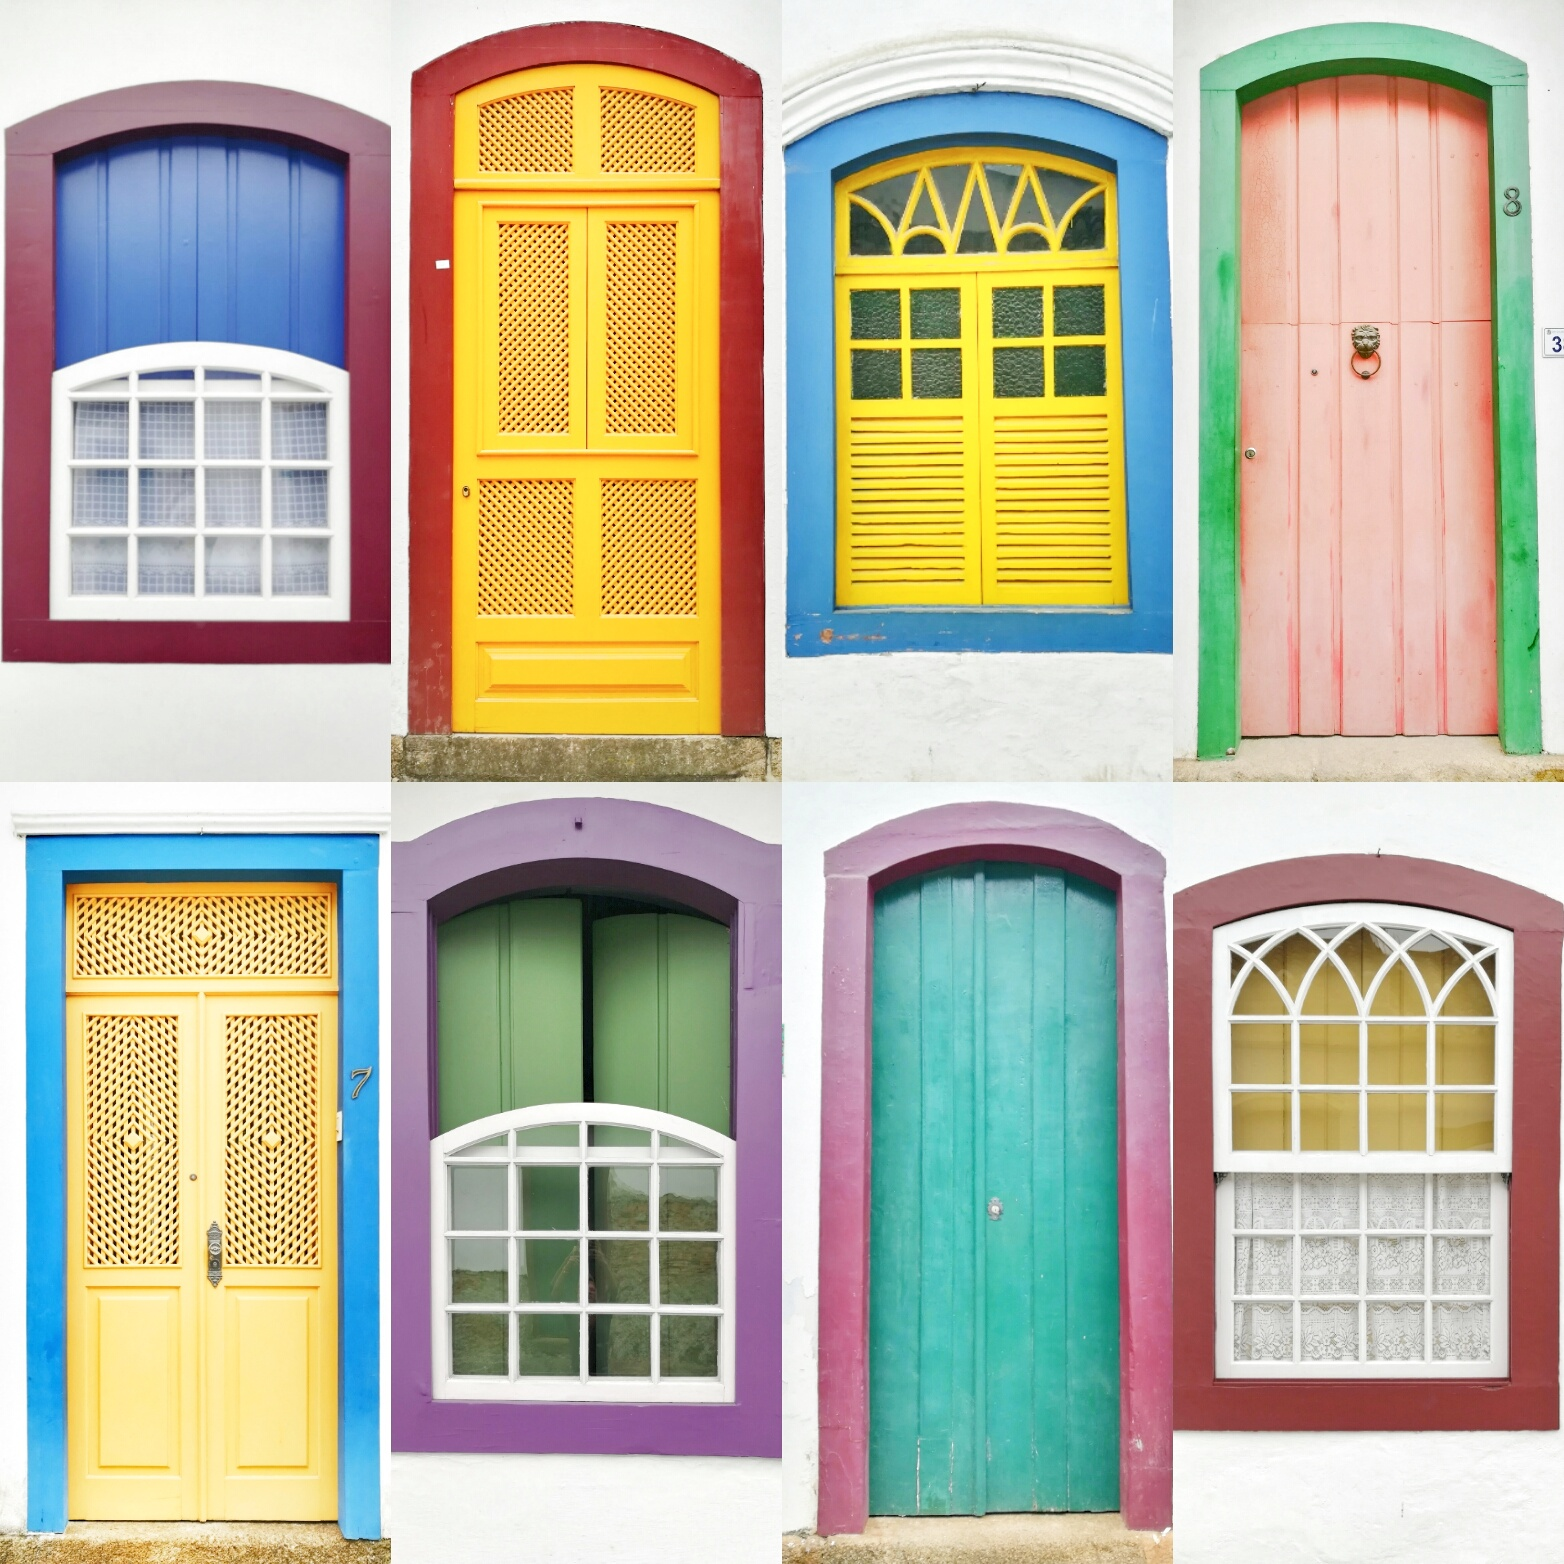 So many fun and colourful windows and doors throughout Paraty! The roads were so bad you would break an ankle looking up while walking to look at these beauties!